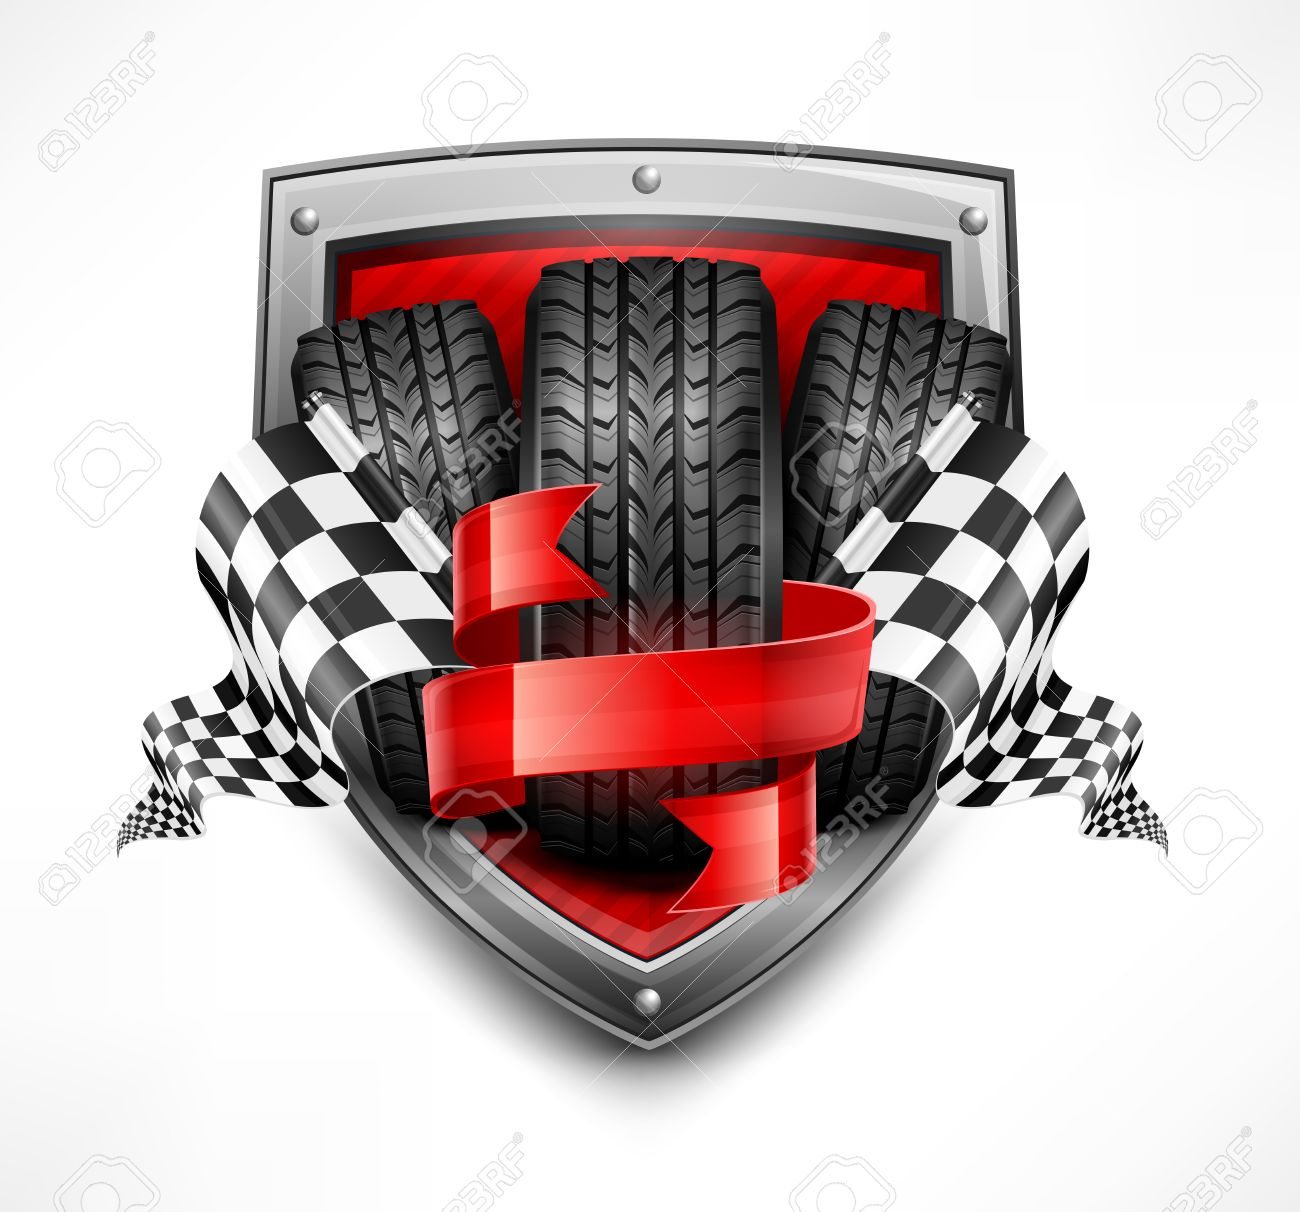 Racing Symbols On Shield, Tires, Ribbon And Flags, Vector ... for Racing Tire Vector  53kxo